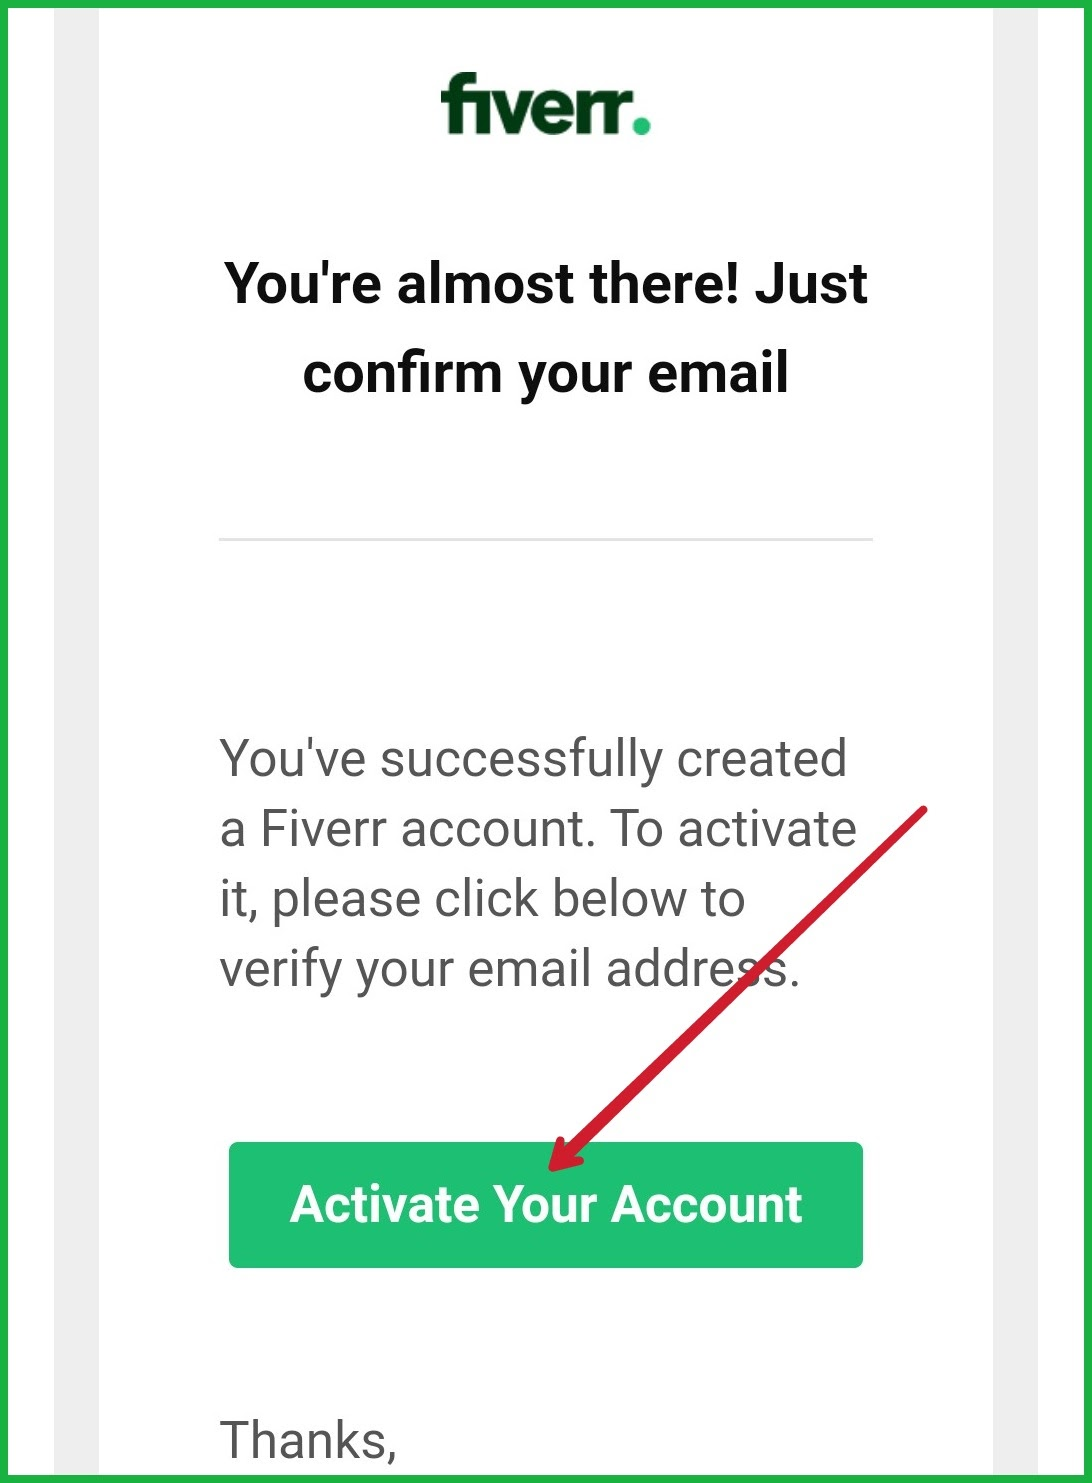 fiverr Activated Your Account